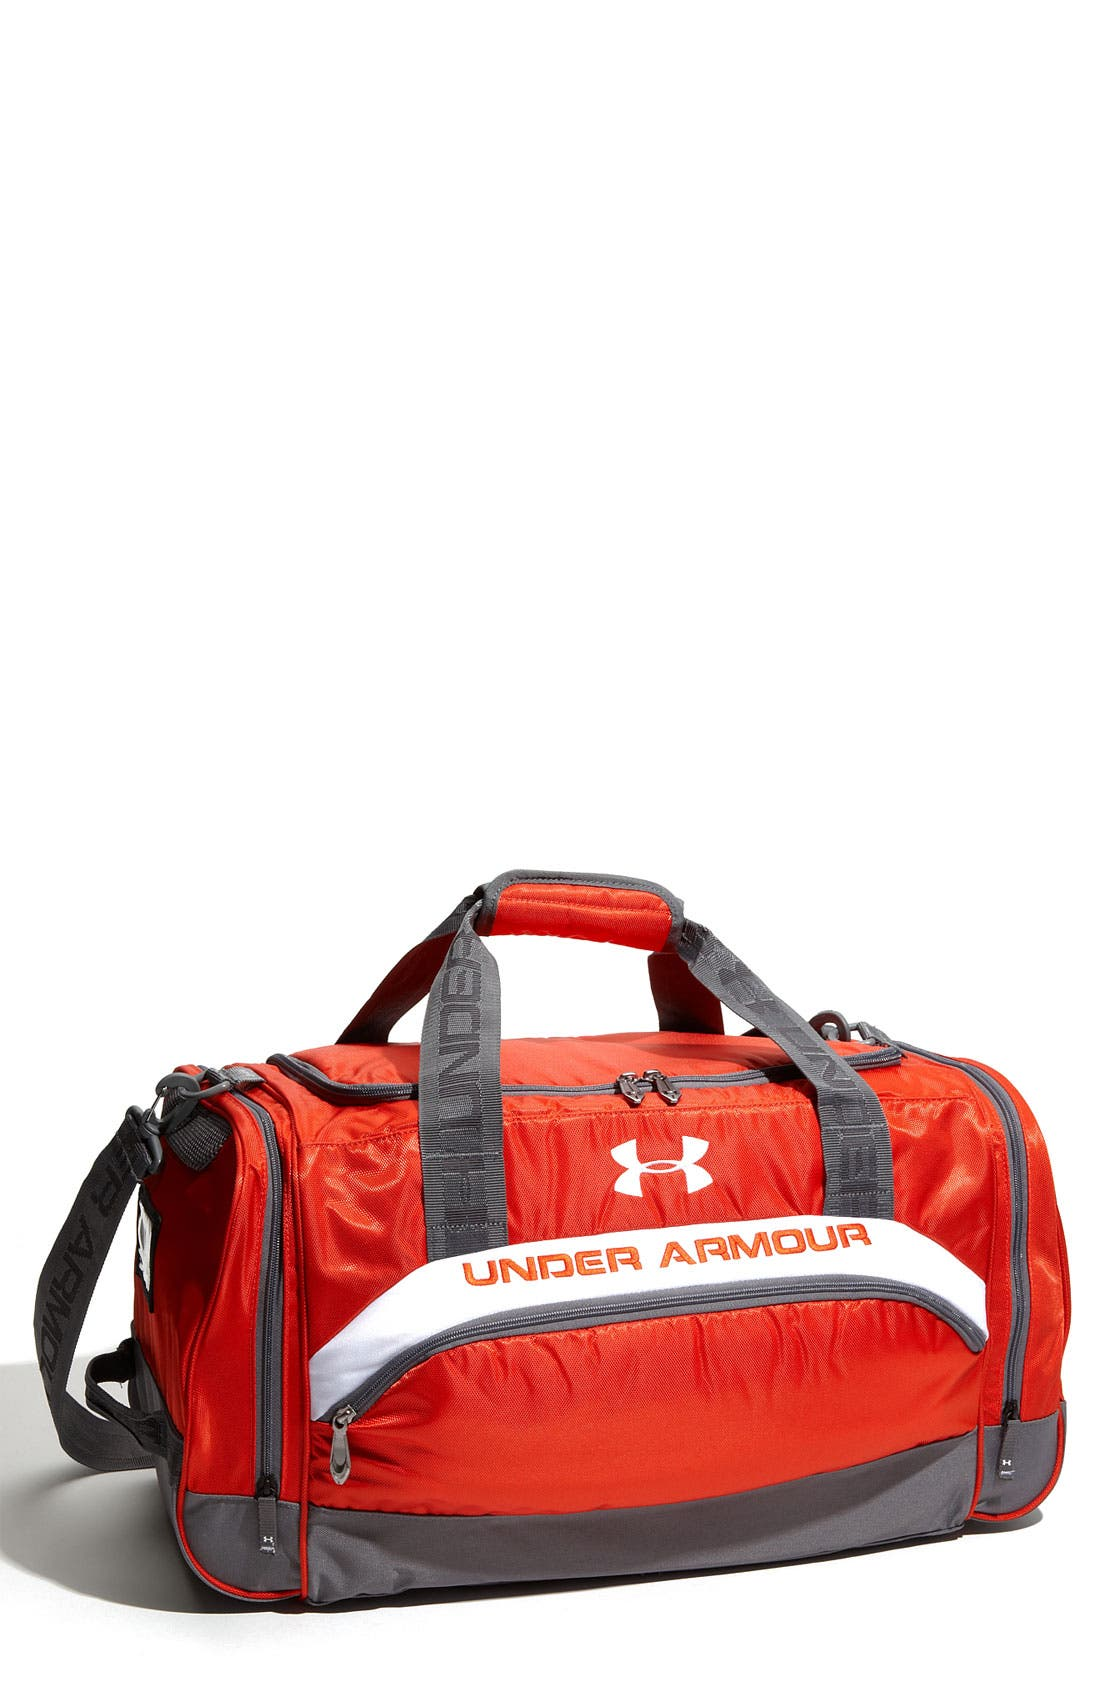 Main Image - Under Armour 'Victory Team' Duffel Bag